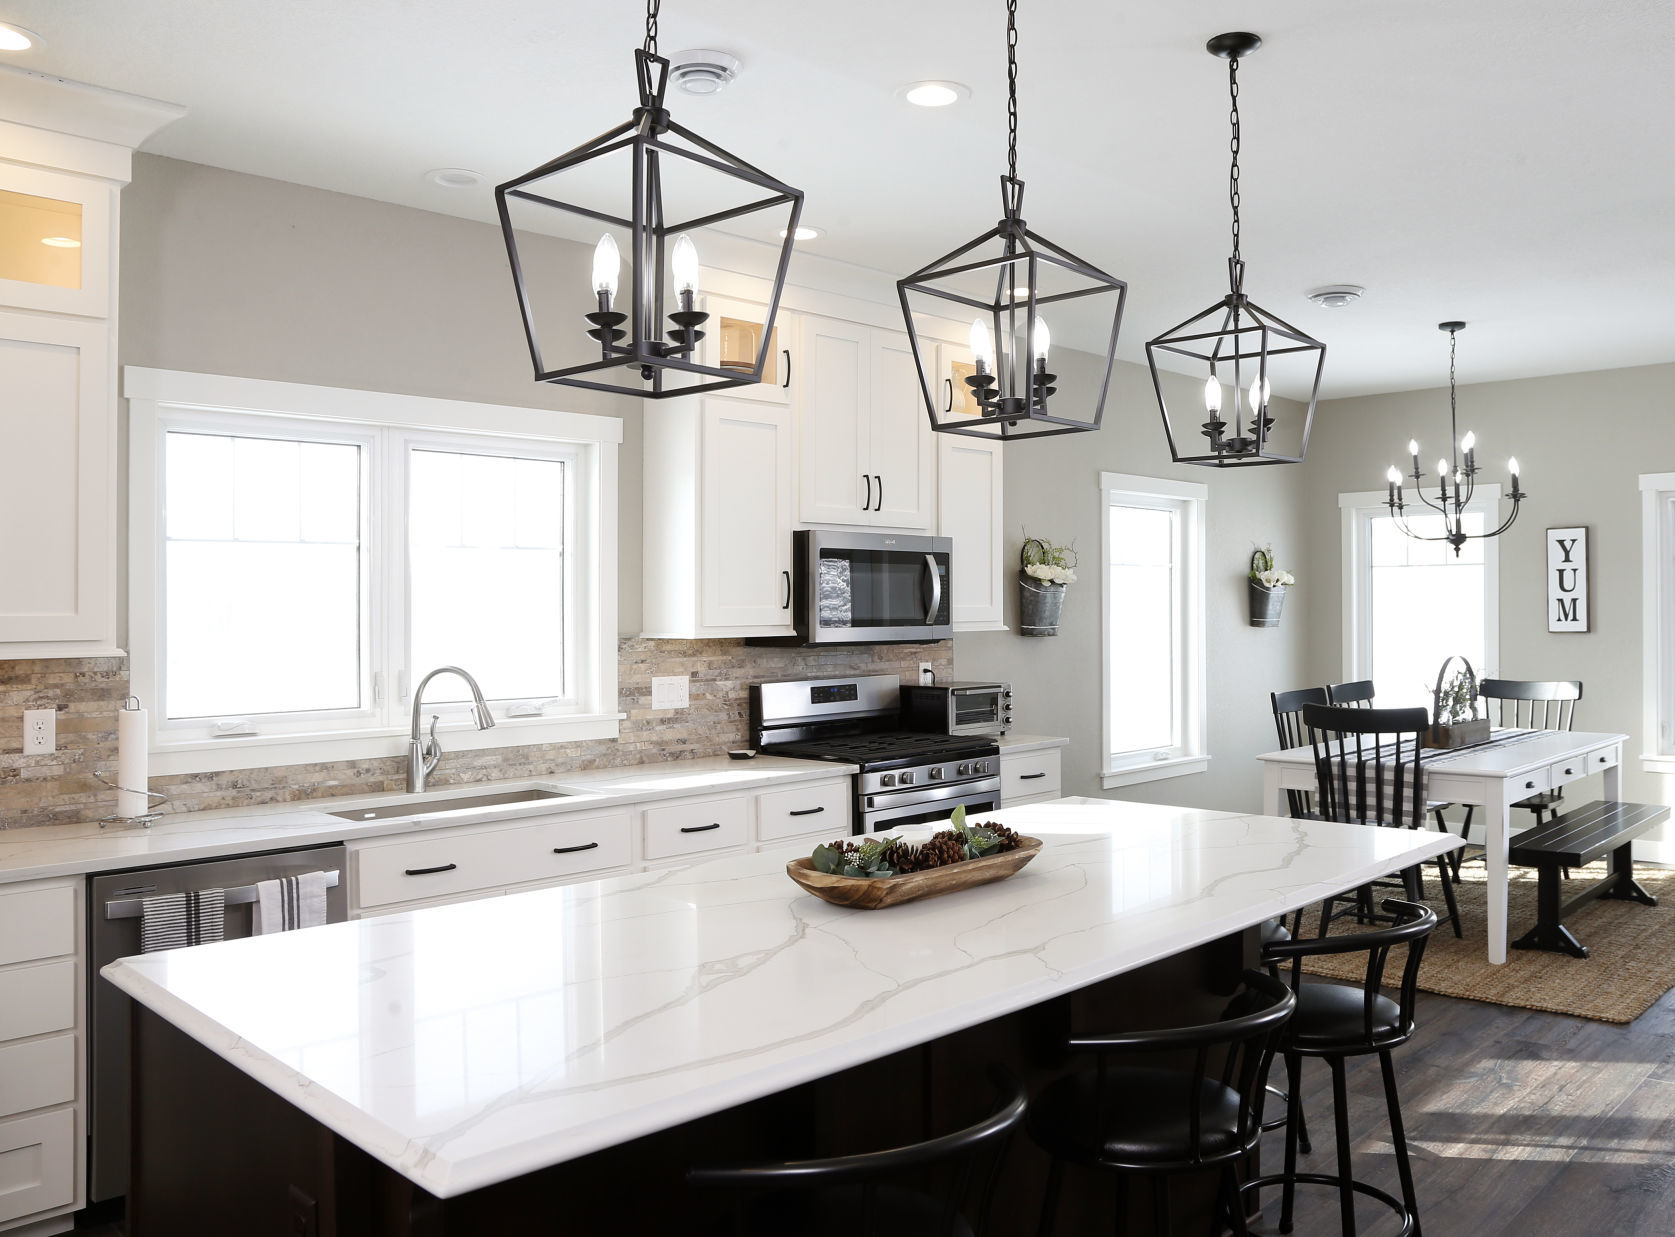 - 10 Stand-out Kitchen Designs Lifestyles Wcfcourier.com